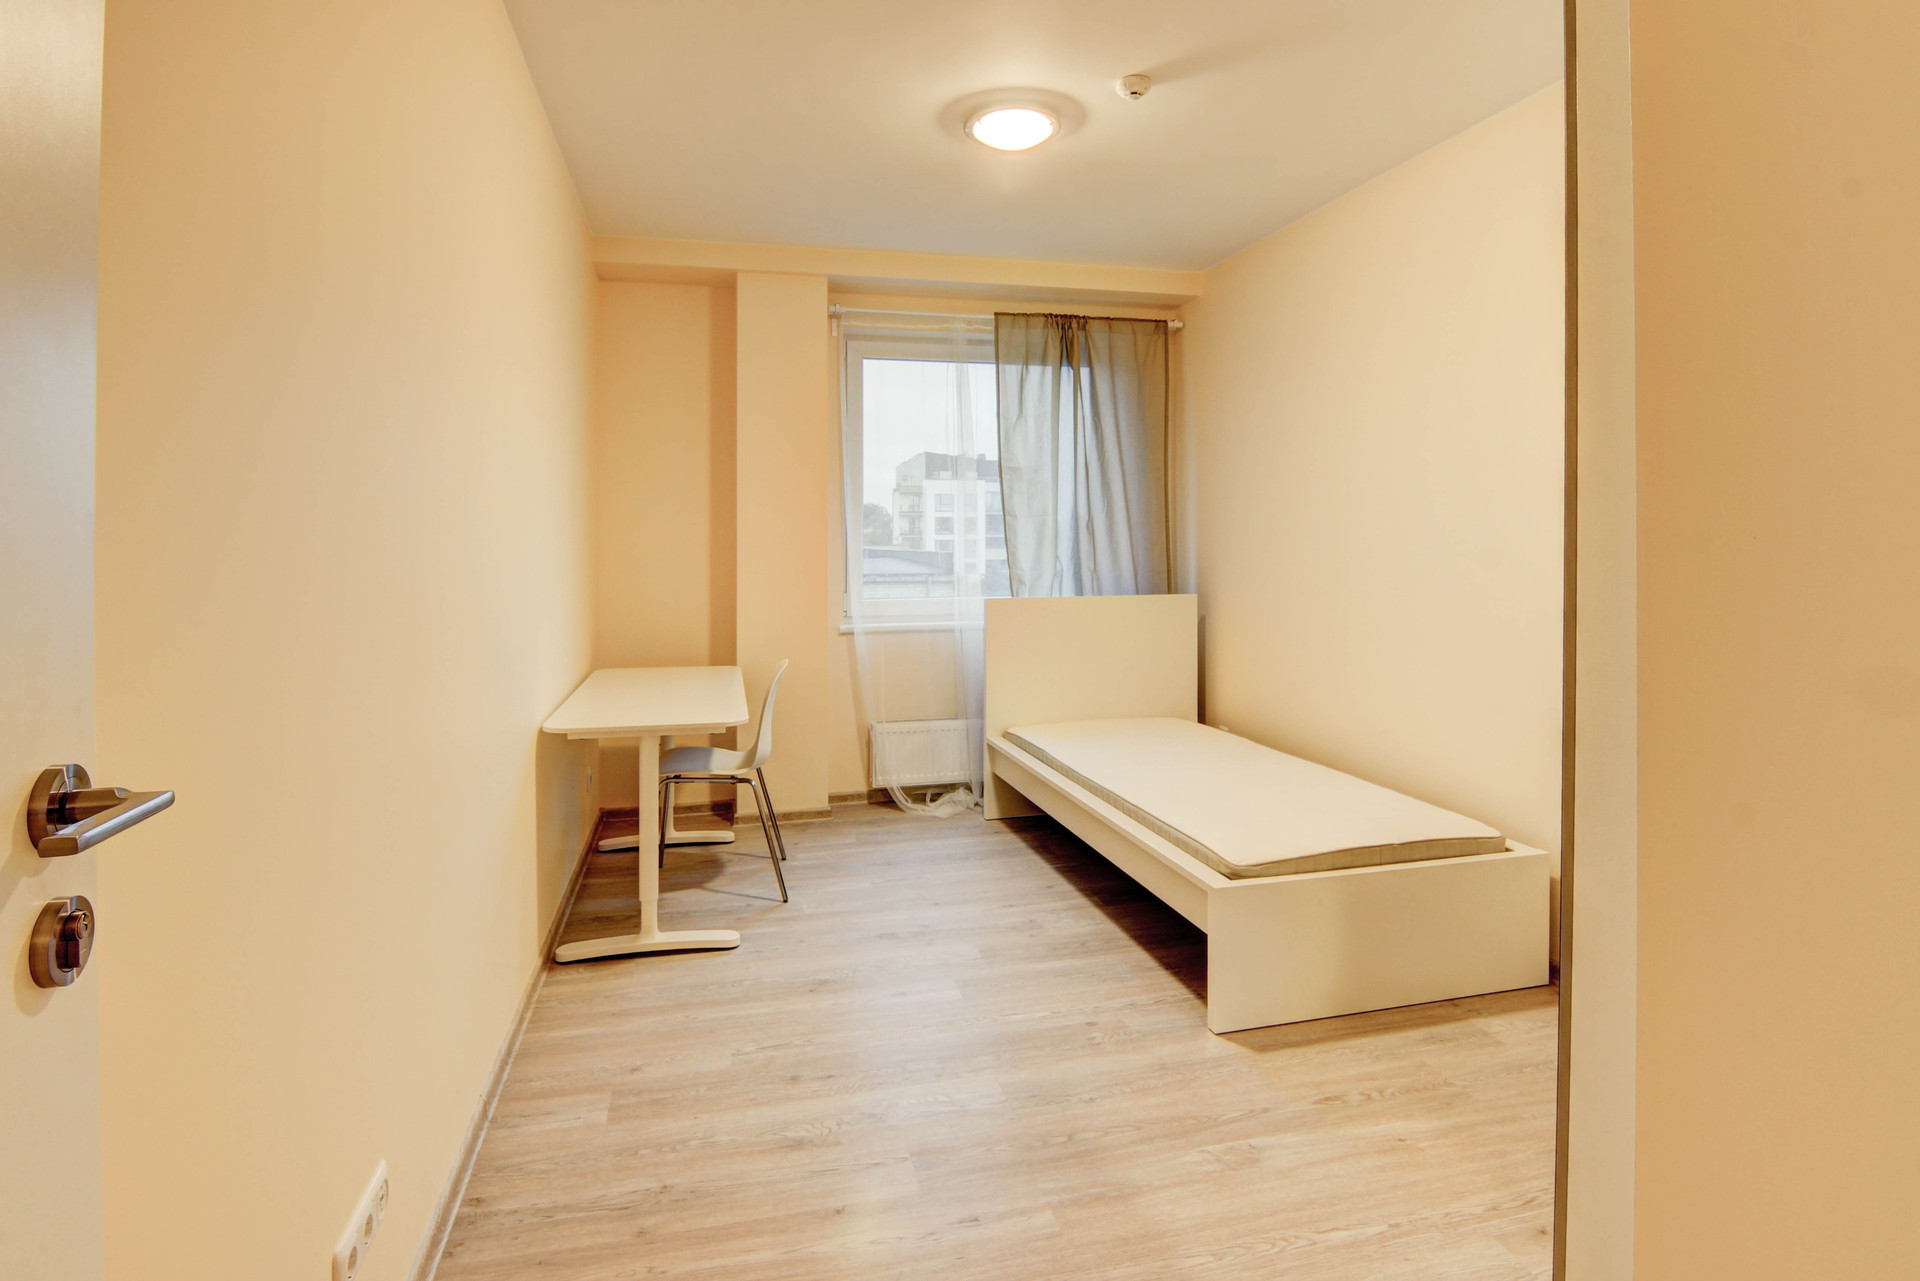 Sunny And Spacious Room In Brand New 3 Room Apartment